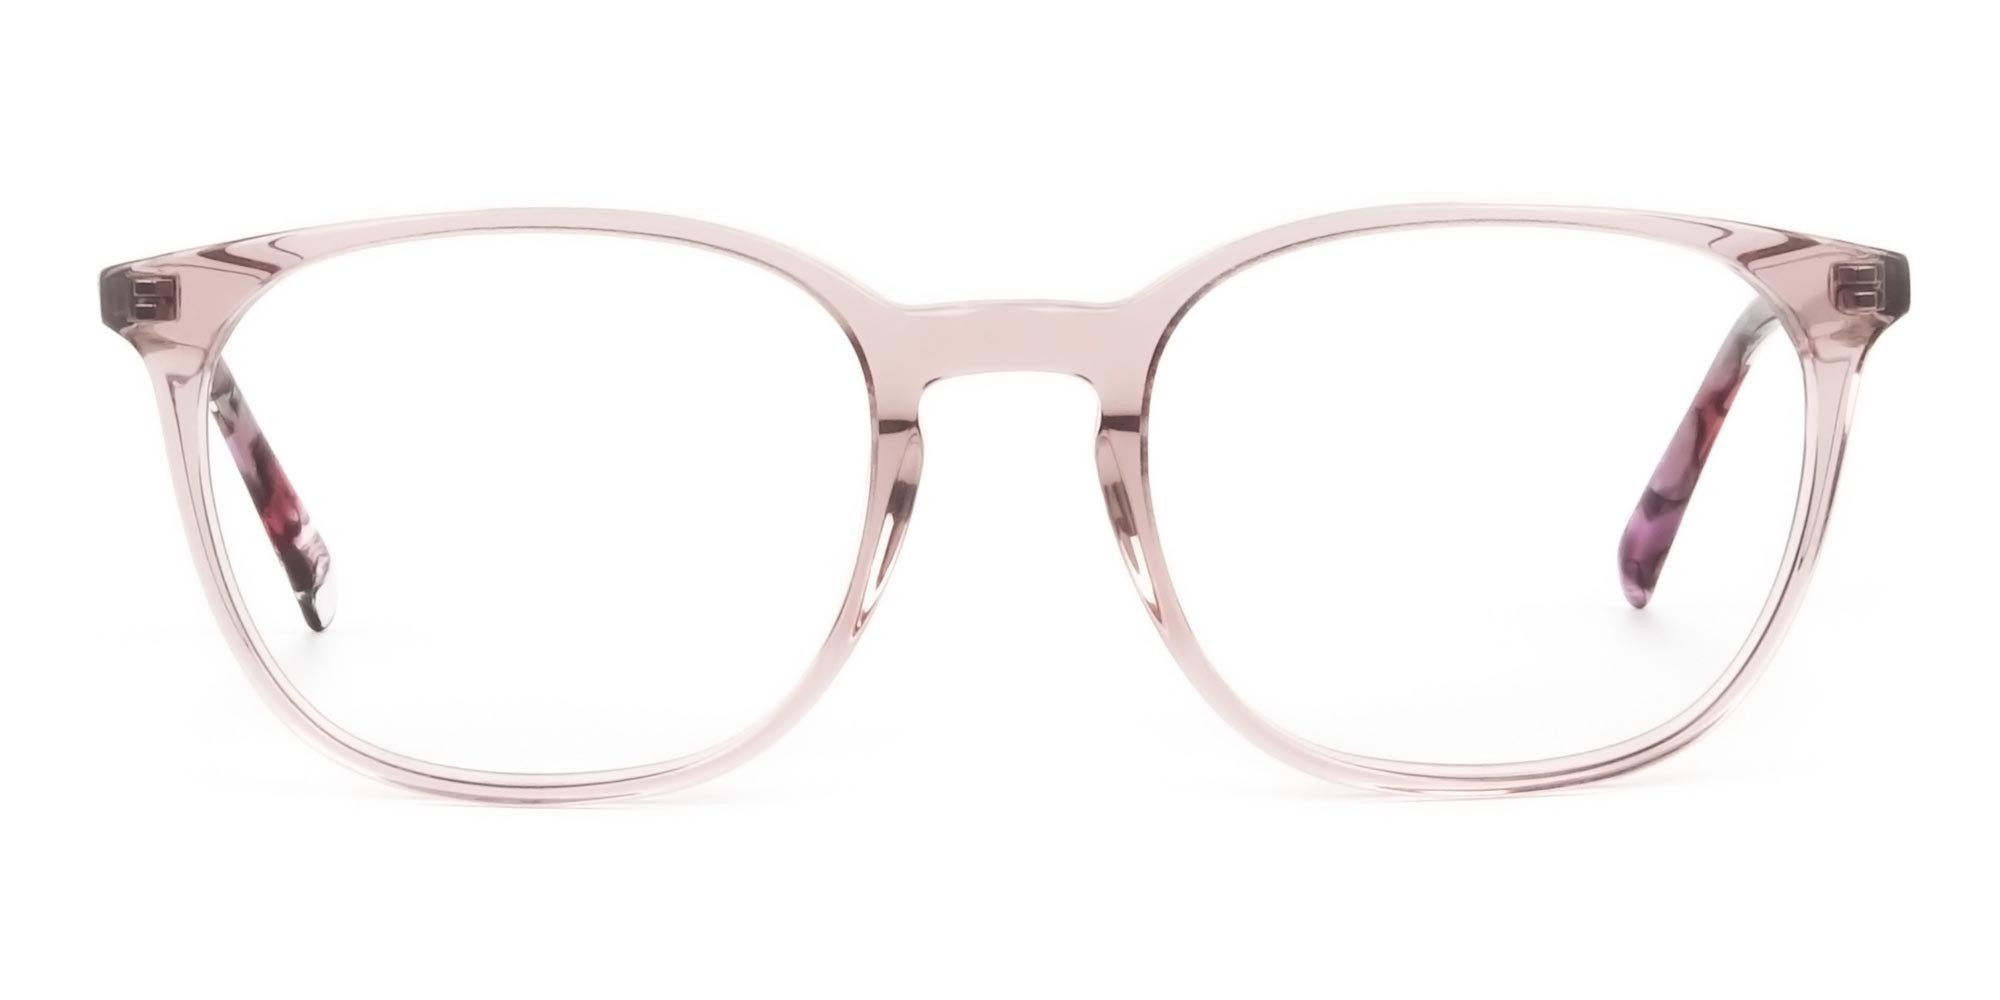 Transparent Nude Pink glasses